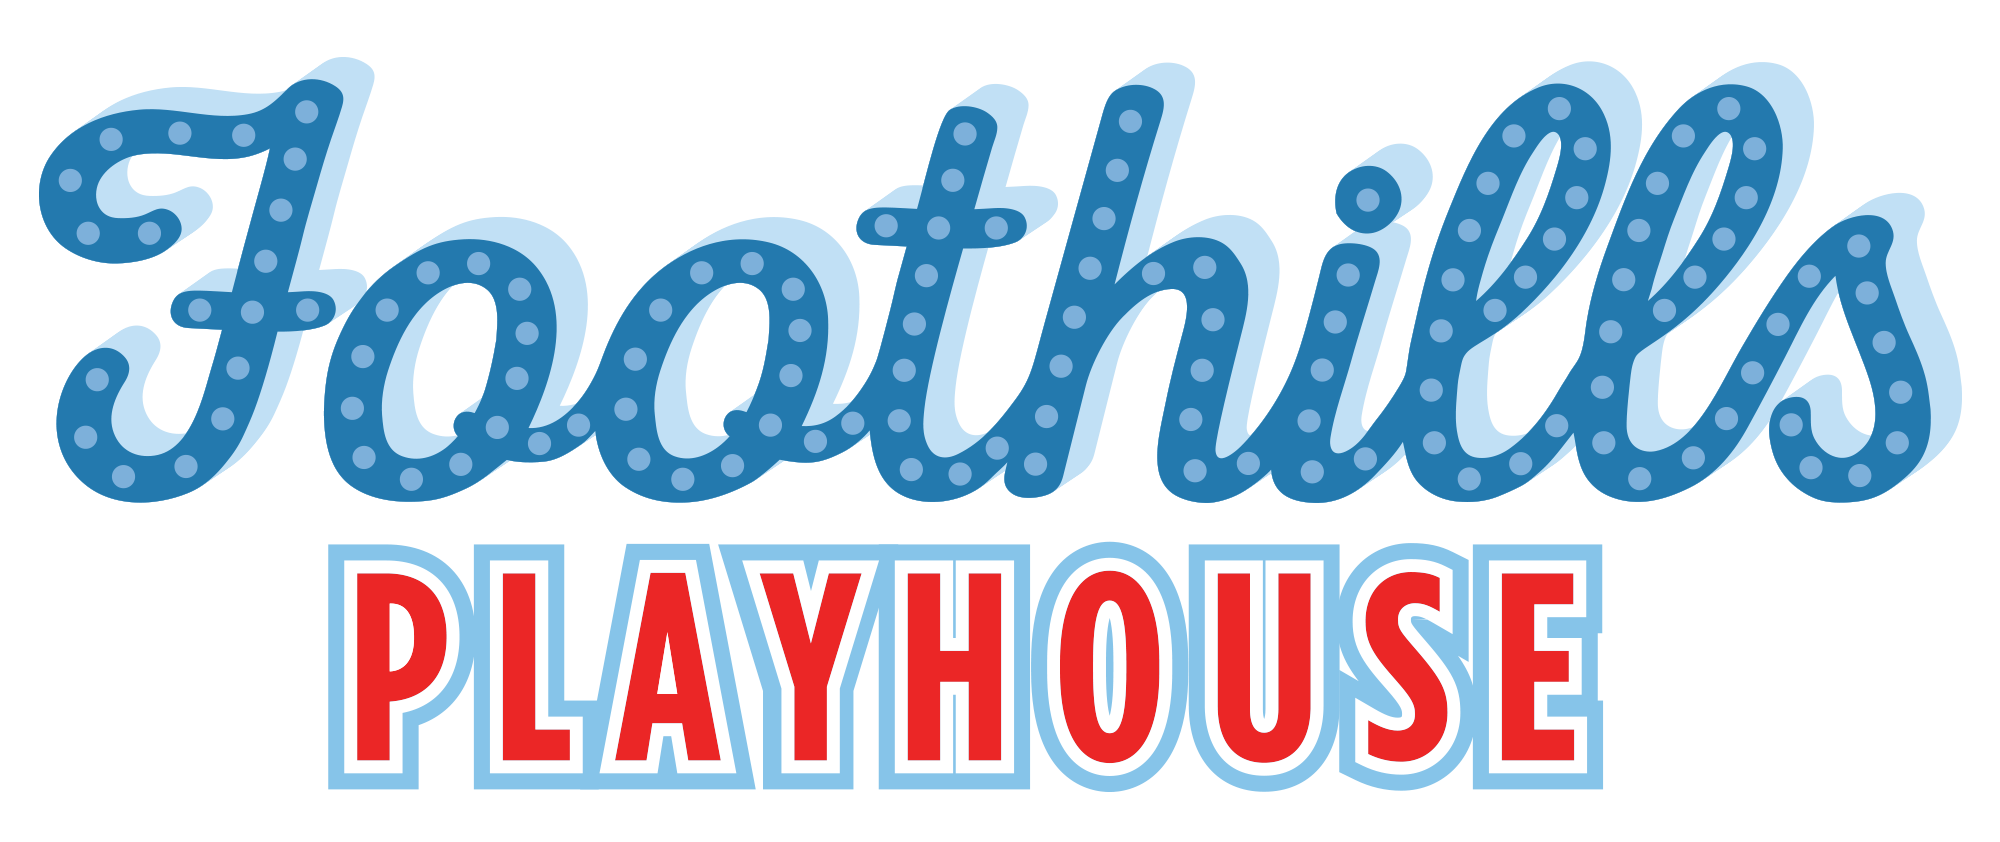 Foothills Playhouse Logo Text.png